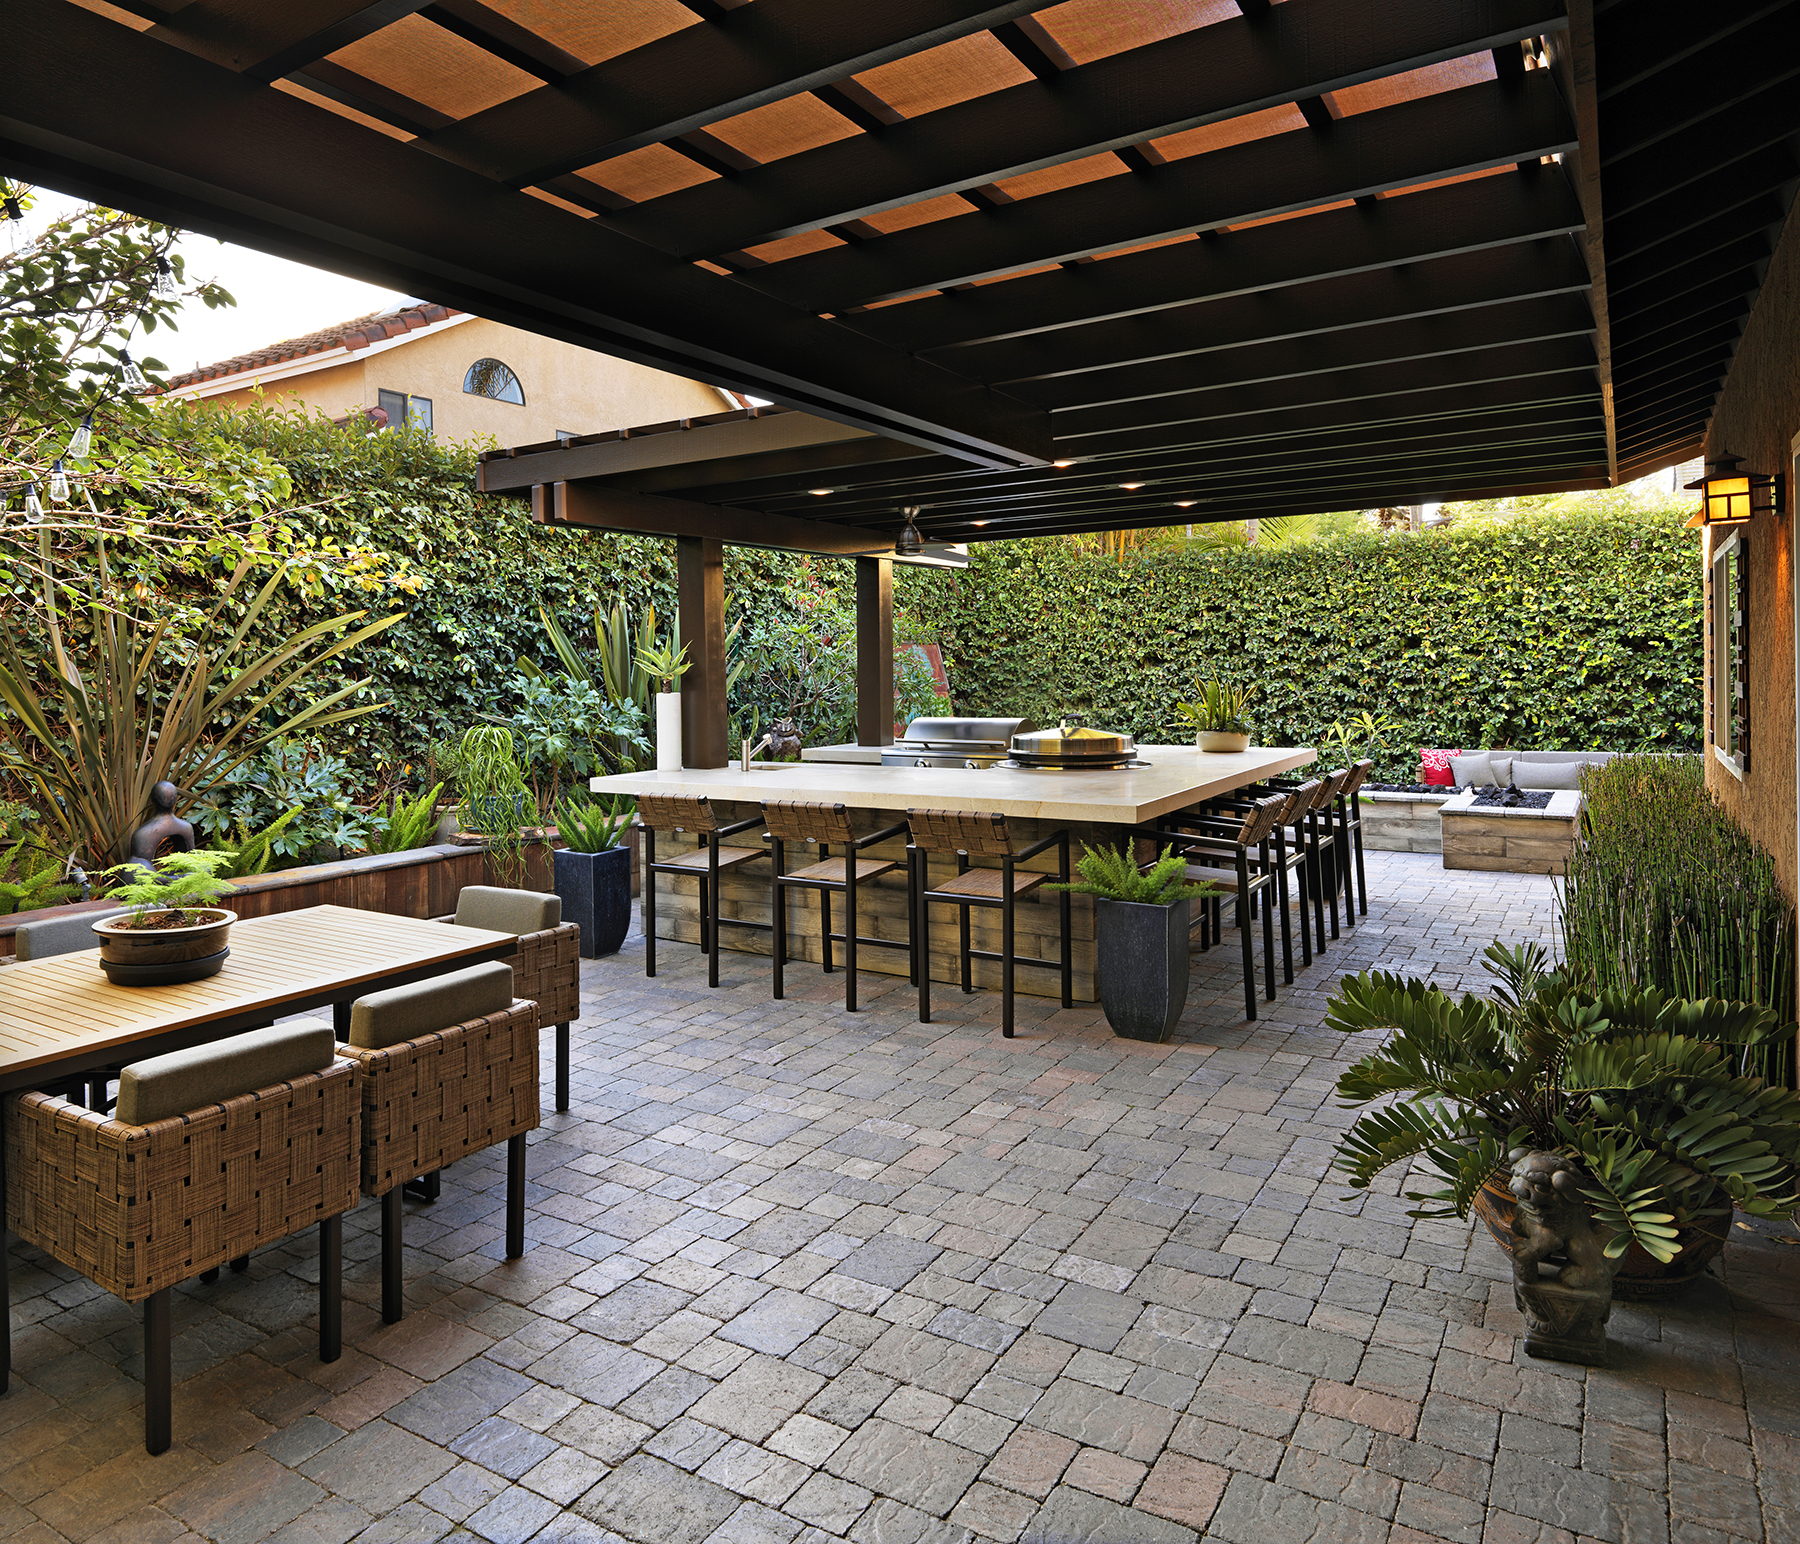 Wonderful Outdoor Dining Area Design And Decorating Ideas: SAM THE COOKING GUY